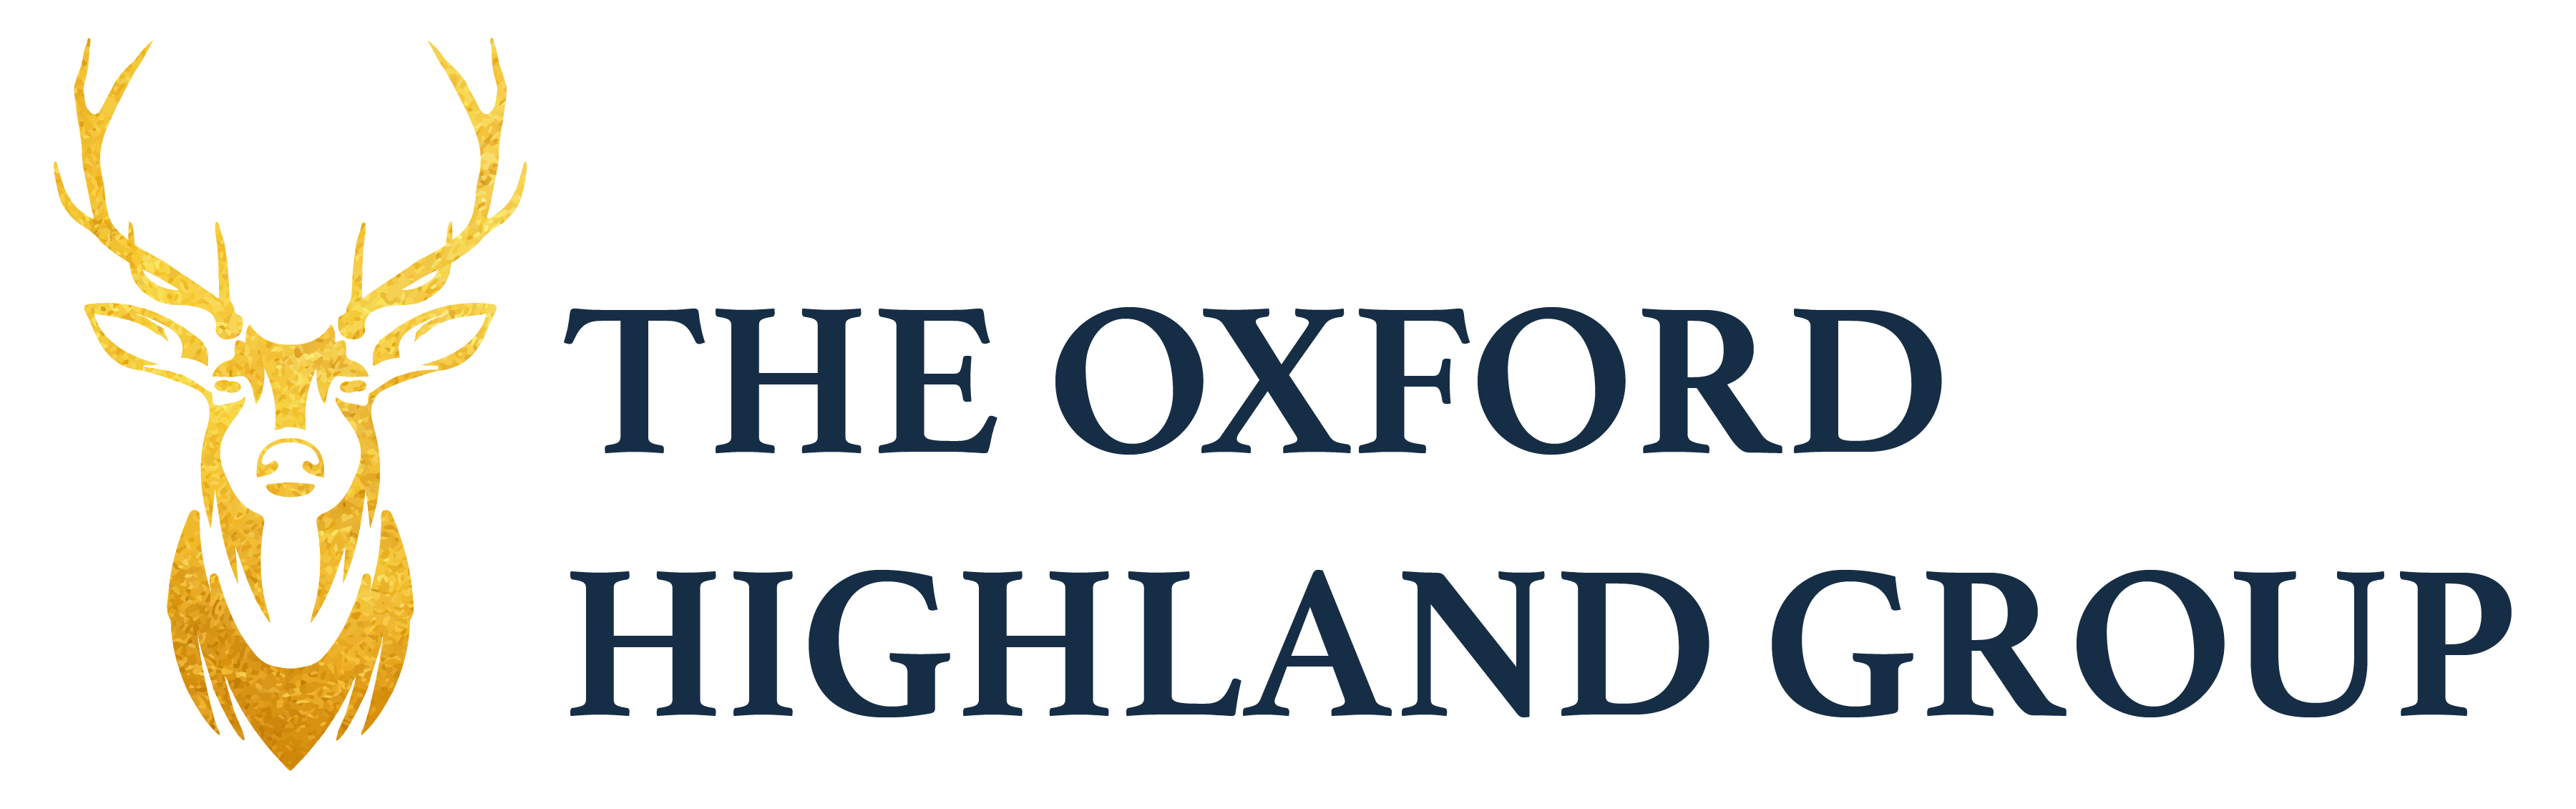 The Oxford Highland Group